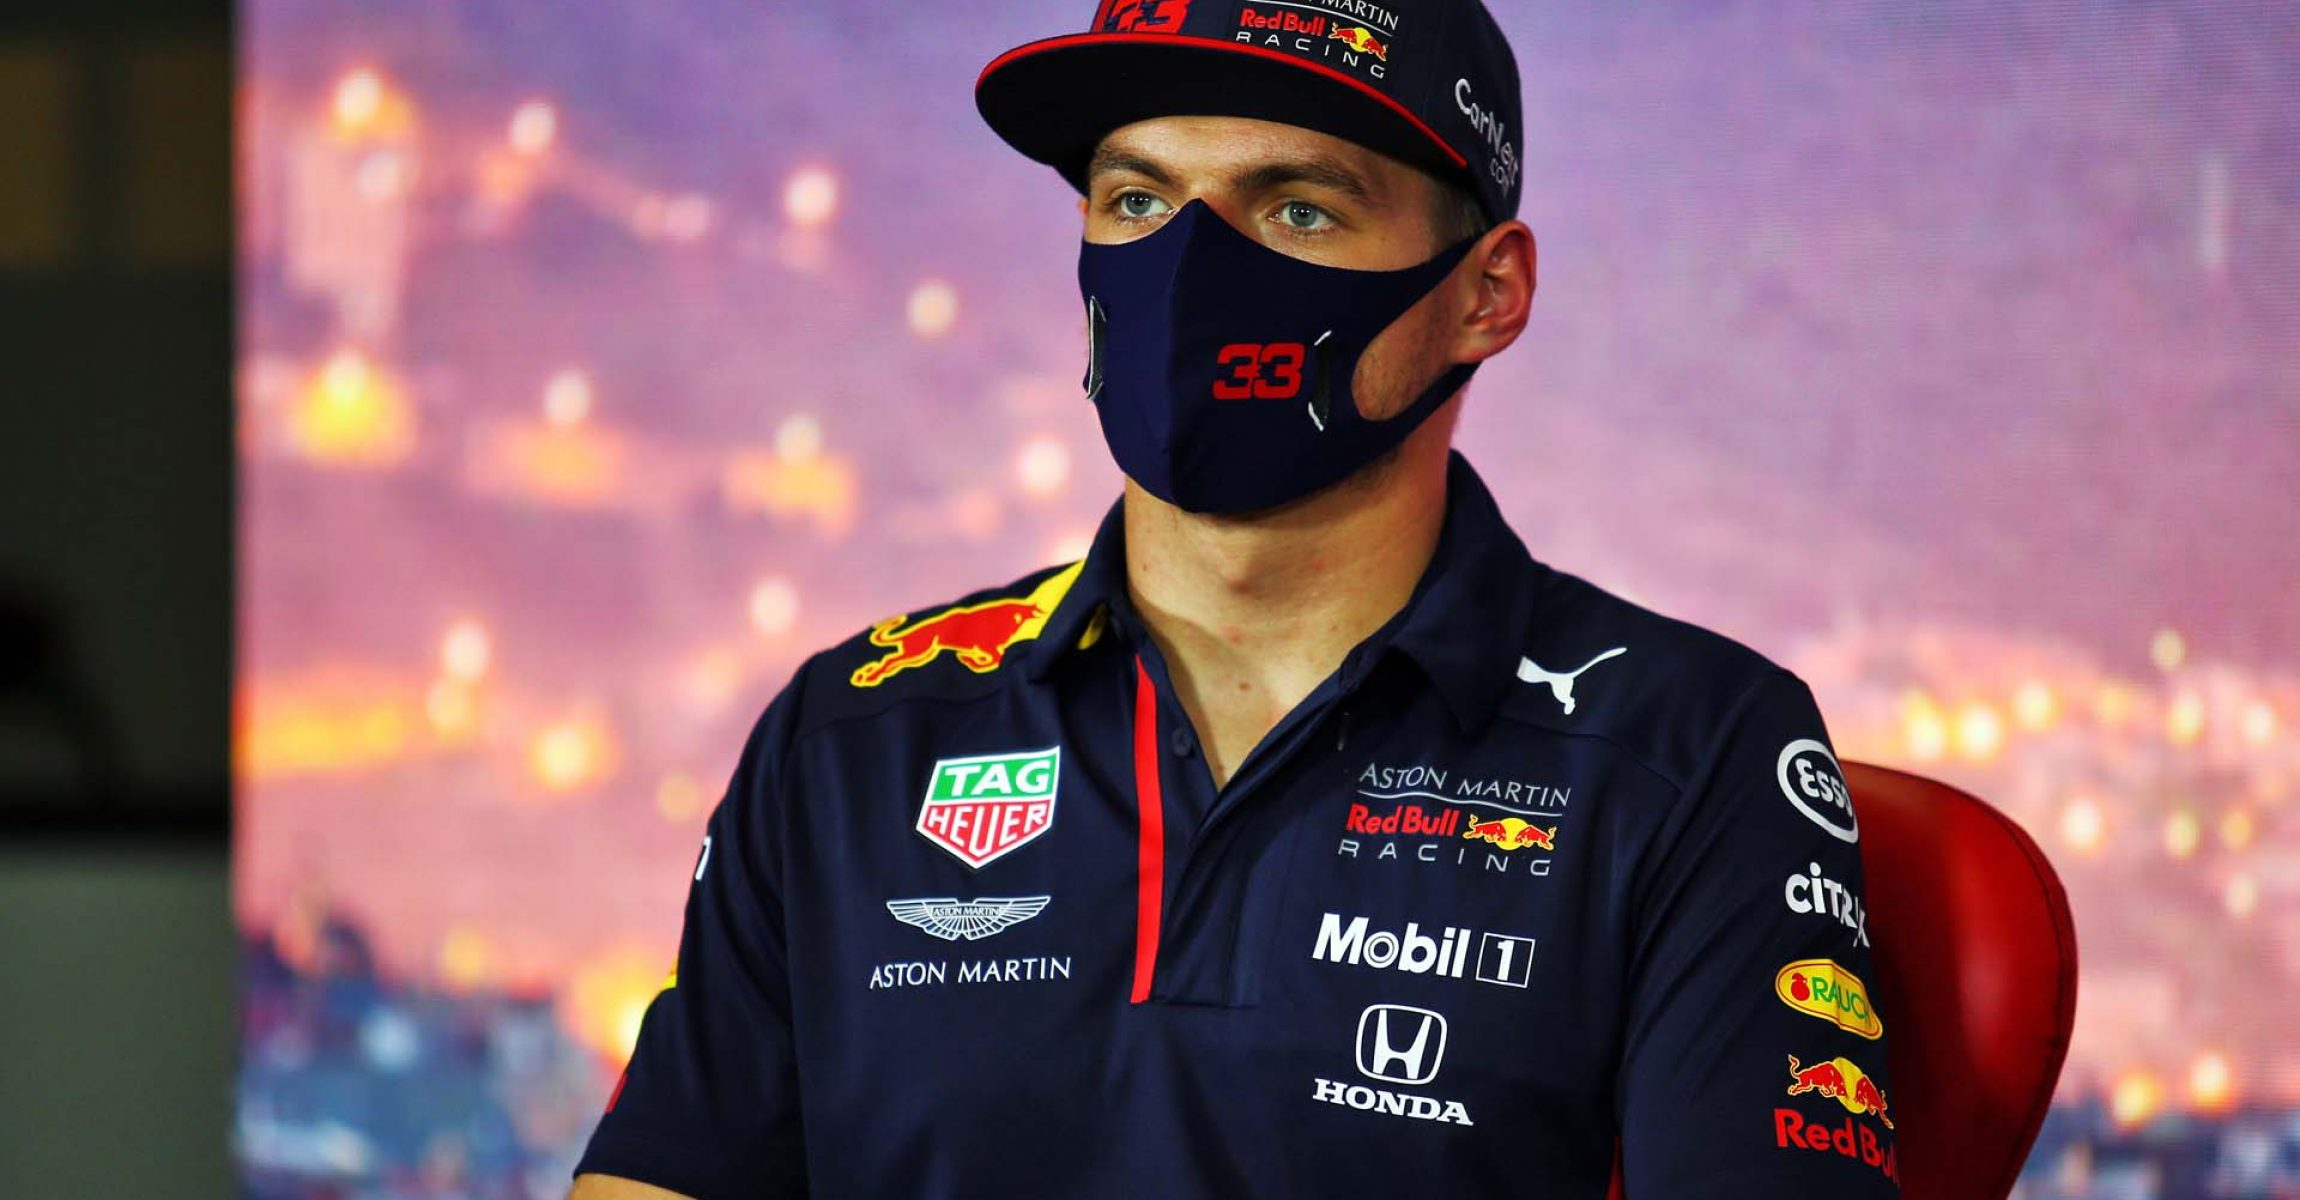 BARCELONA, SPAIN - AUGUST 13: Max Verstappen of Netherlands and Red Bull Racing talks in the Drivers Press Conference during previews ahead of the F1 Grand Prix of Spain at Circuit de Barcelona-Catalunya on August 13, 2020 in Barcelona, Spain. (Photo by Joao Beato/Pool via Getty Images)